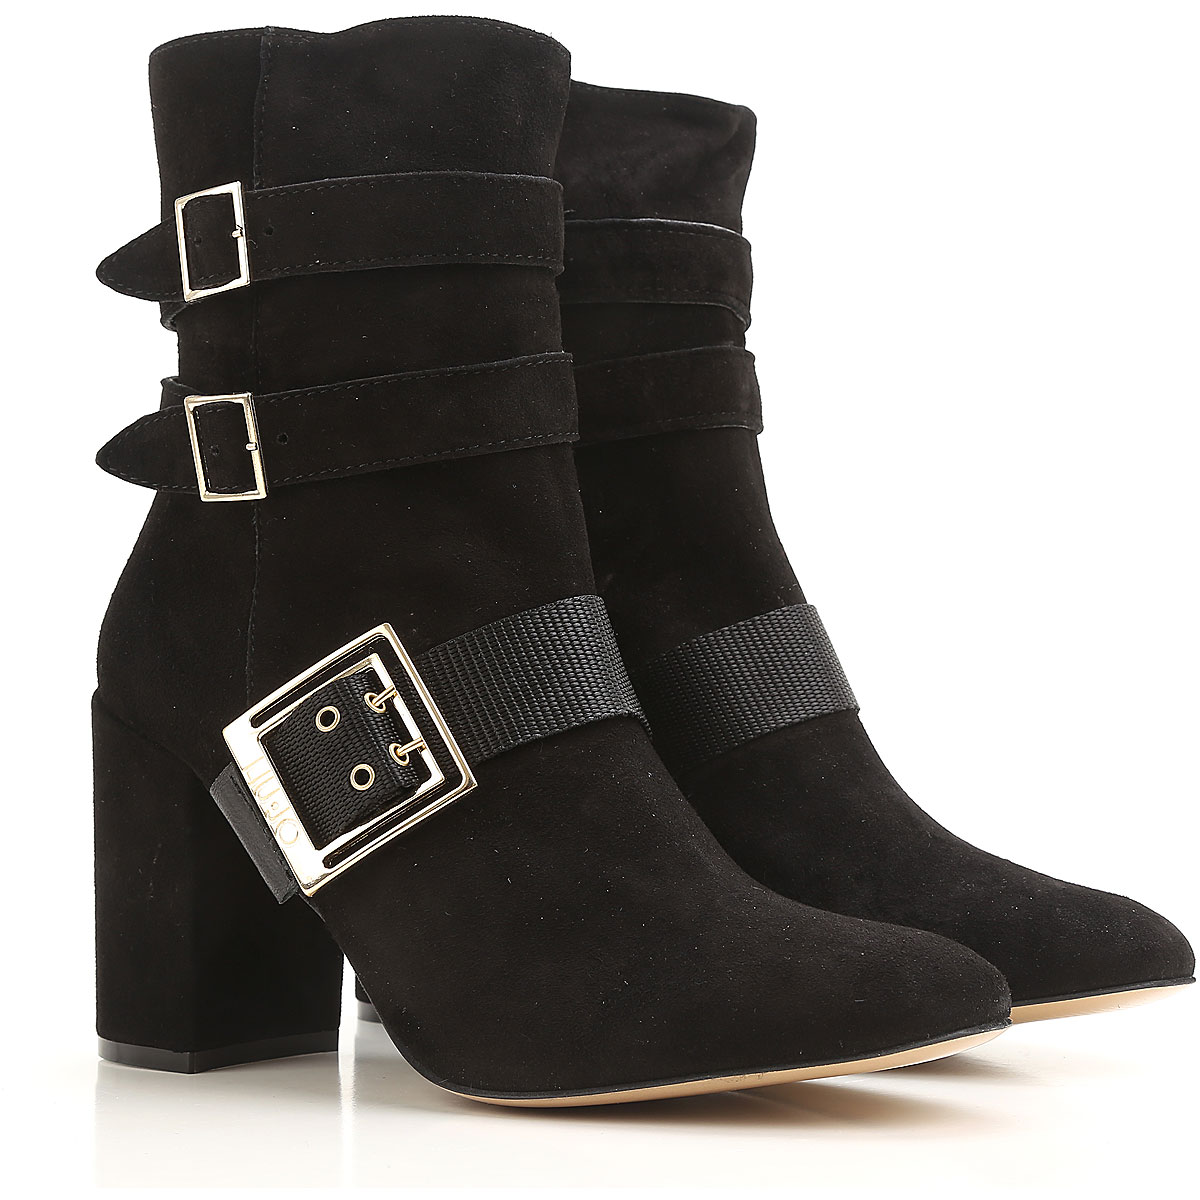 Liu Jo Boots for Women, Booties On Sale in Outlet, Black, Suede leather, 2017, 6 9